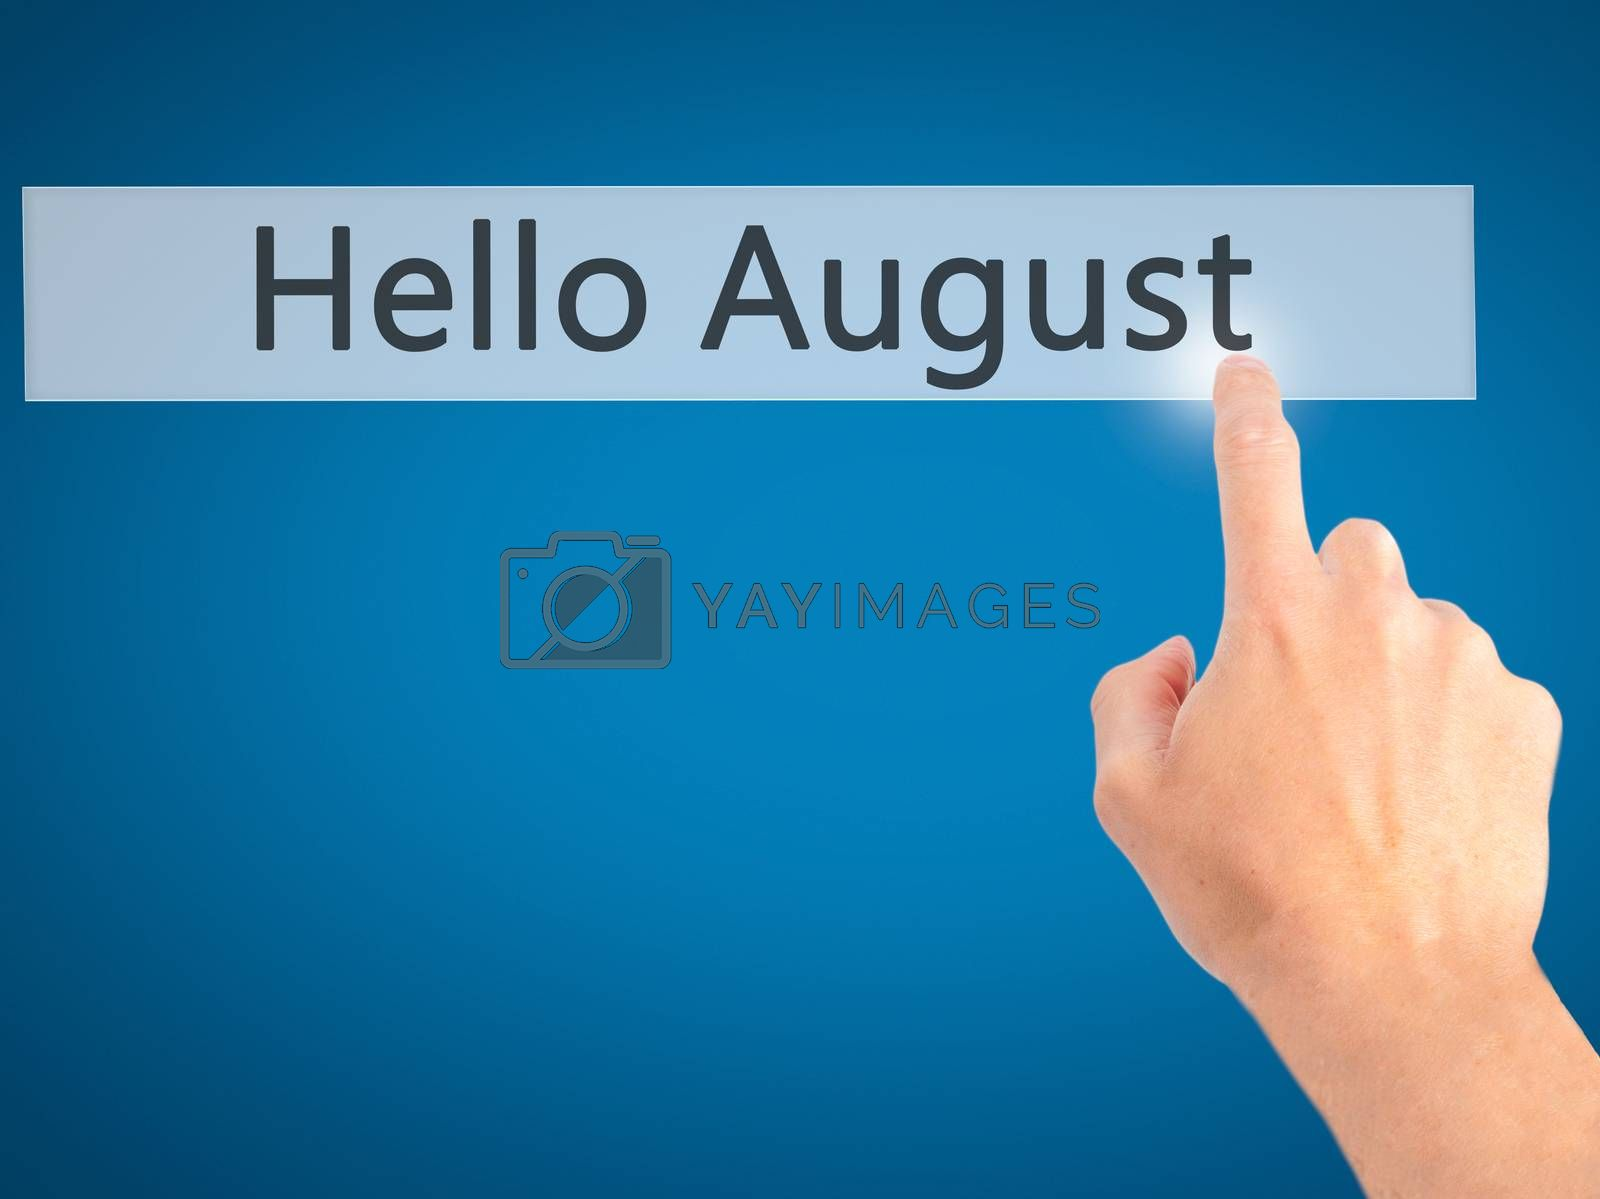 Hello August - Hand pressing a button on blurred background conc by netsay.net